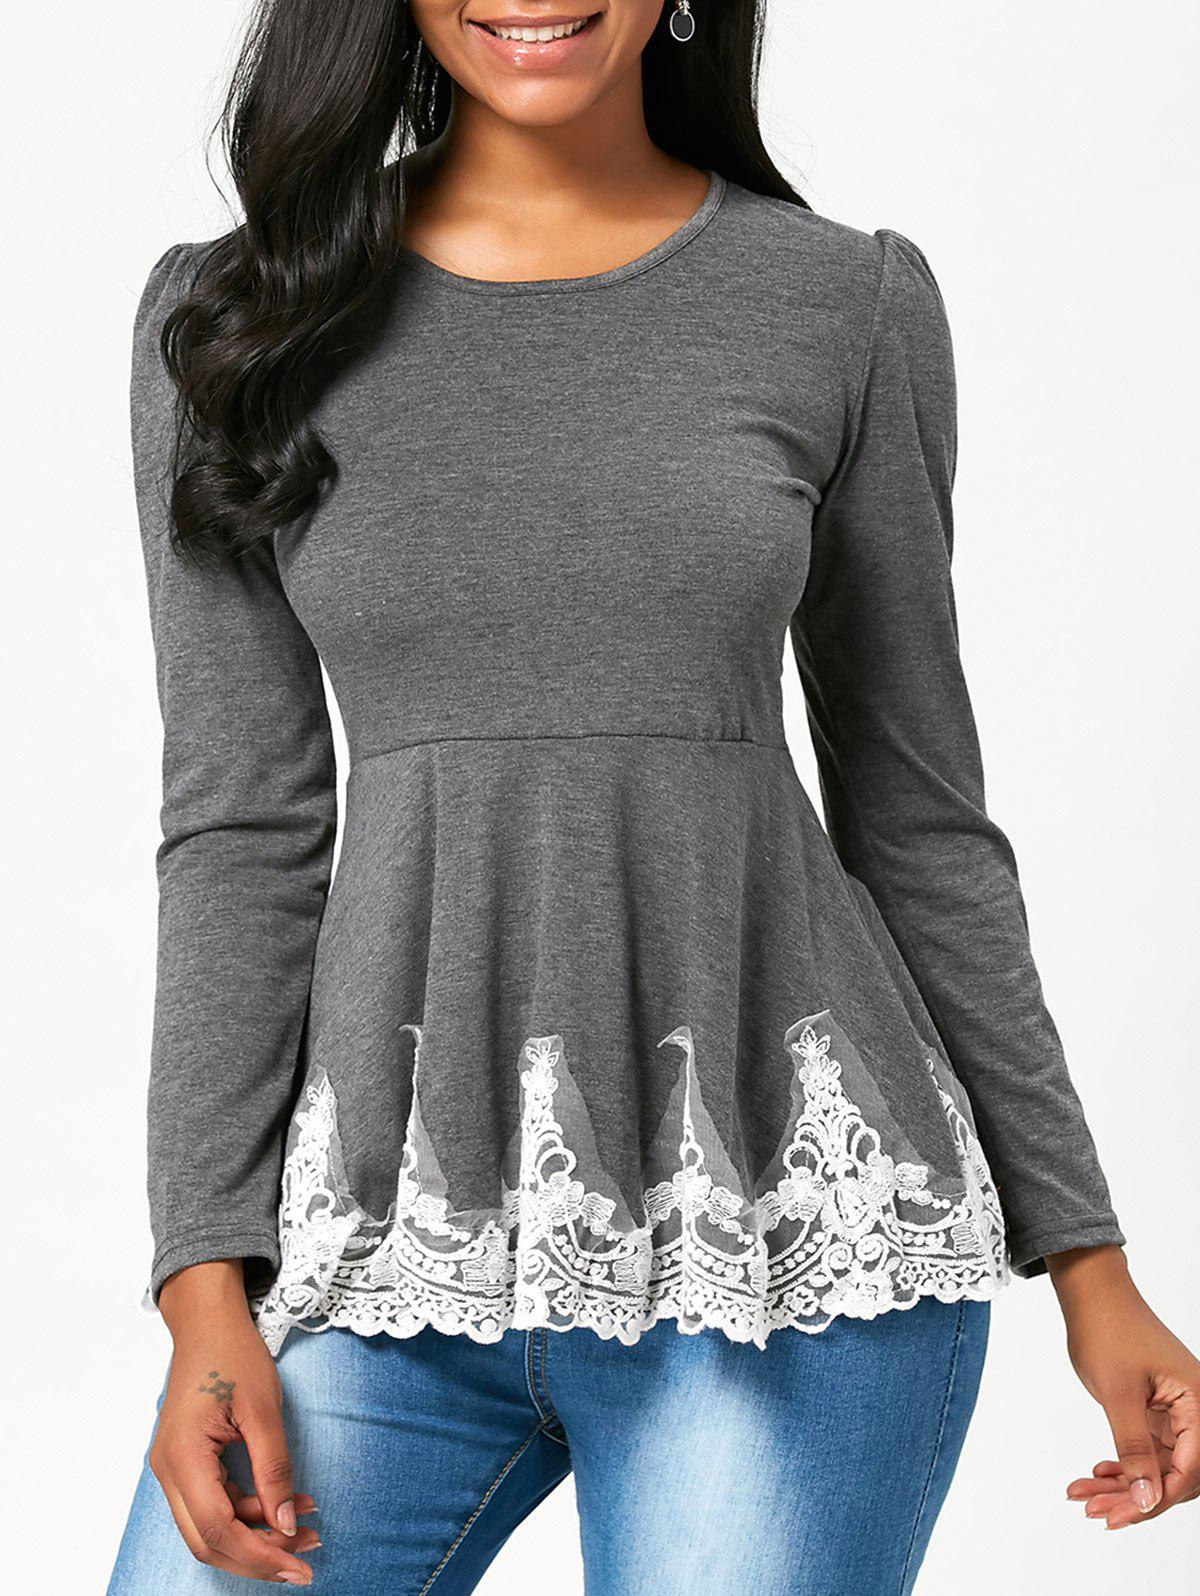 Lace Trim High Waist Long Sleeve T-shirtWOMEN<br><br>Size: M; Color: GRAY; Material: Polyester,Spandex; Shirt Length: Regular; Sleeve Length: Full; Collar: Scoop Neck; Style: Fashion; Embellishment: Lace; Pattern Type: Solid Color; Season: Fall,Spring; Elasticity: Micro-elastic; Weight: 0.3000kg; Package Contents: 1 x T-shirt;